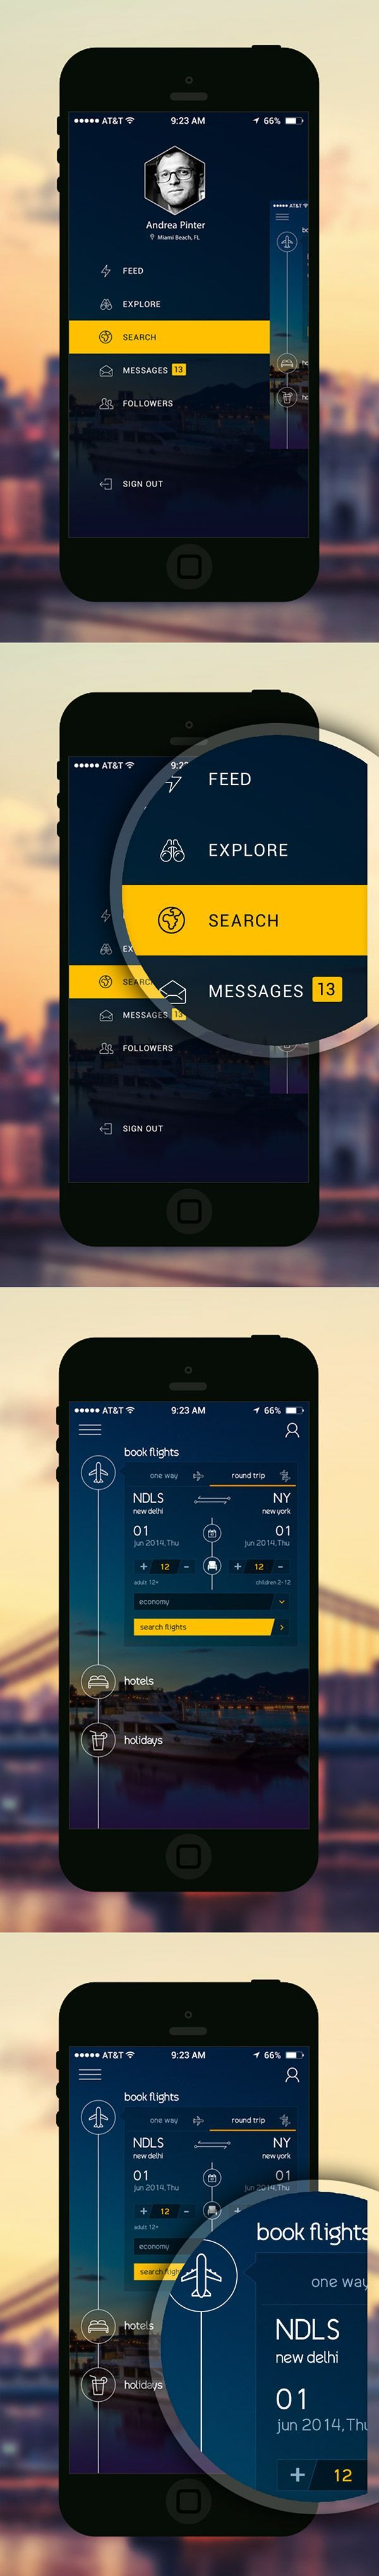 Free Booking App PSD According to iPhone 6+ on Behance. If you like UX, design, or design thinking, check out theuxblog.com